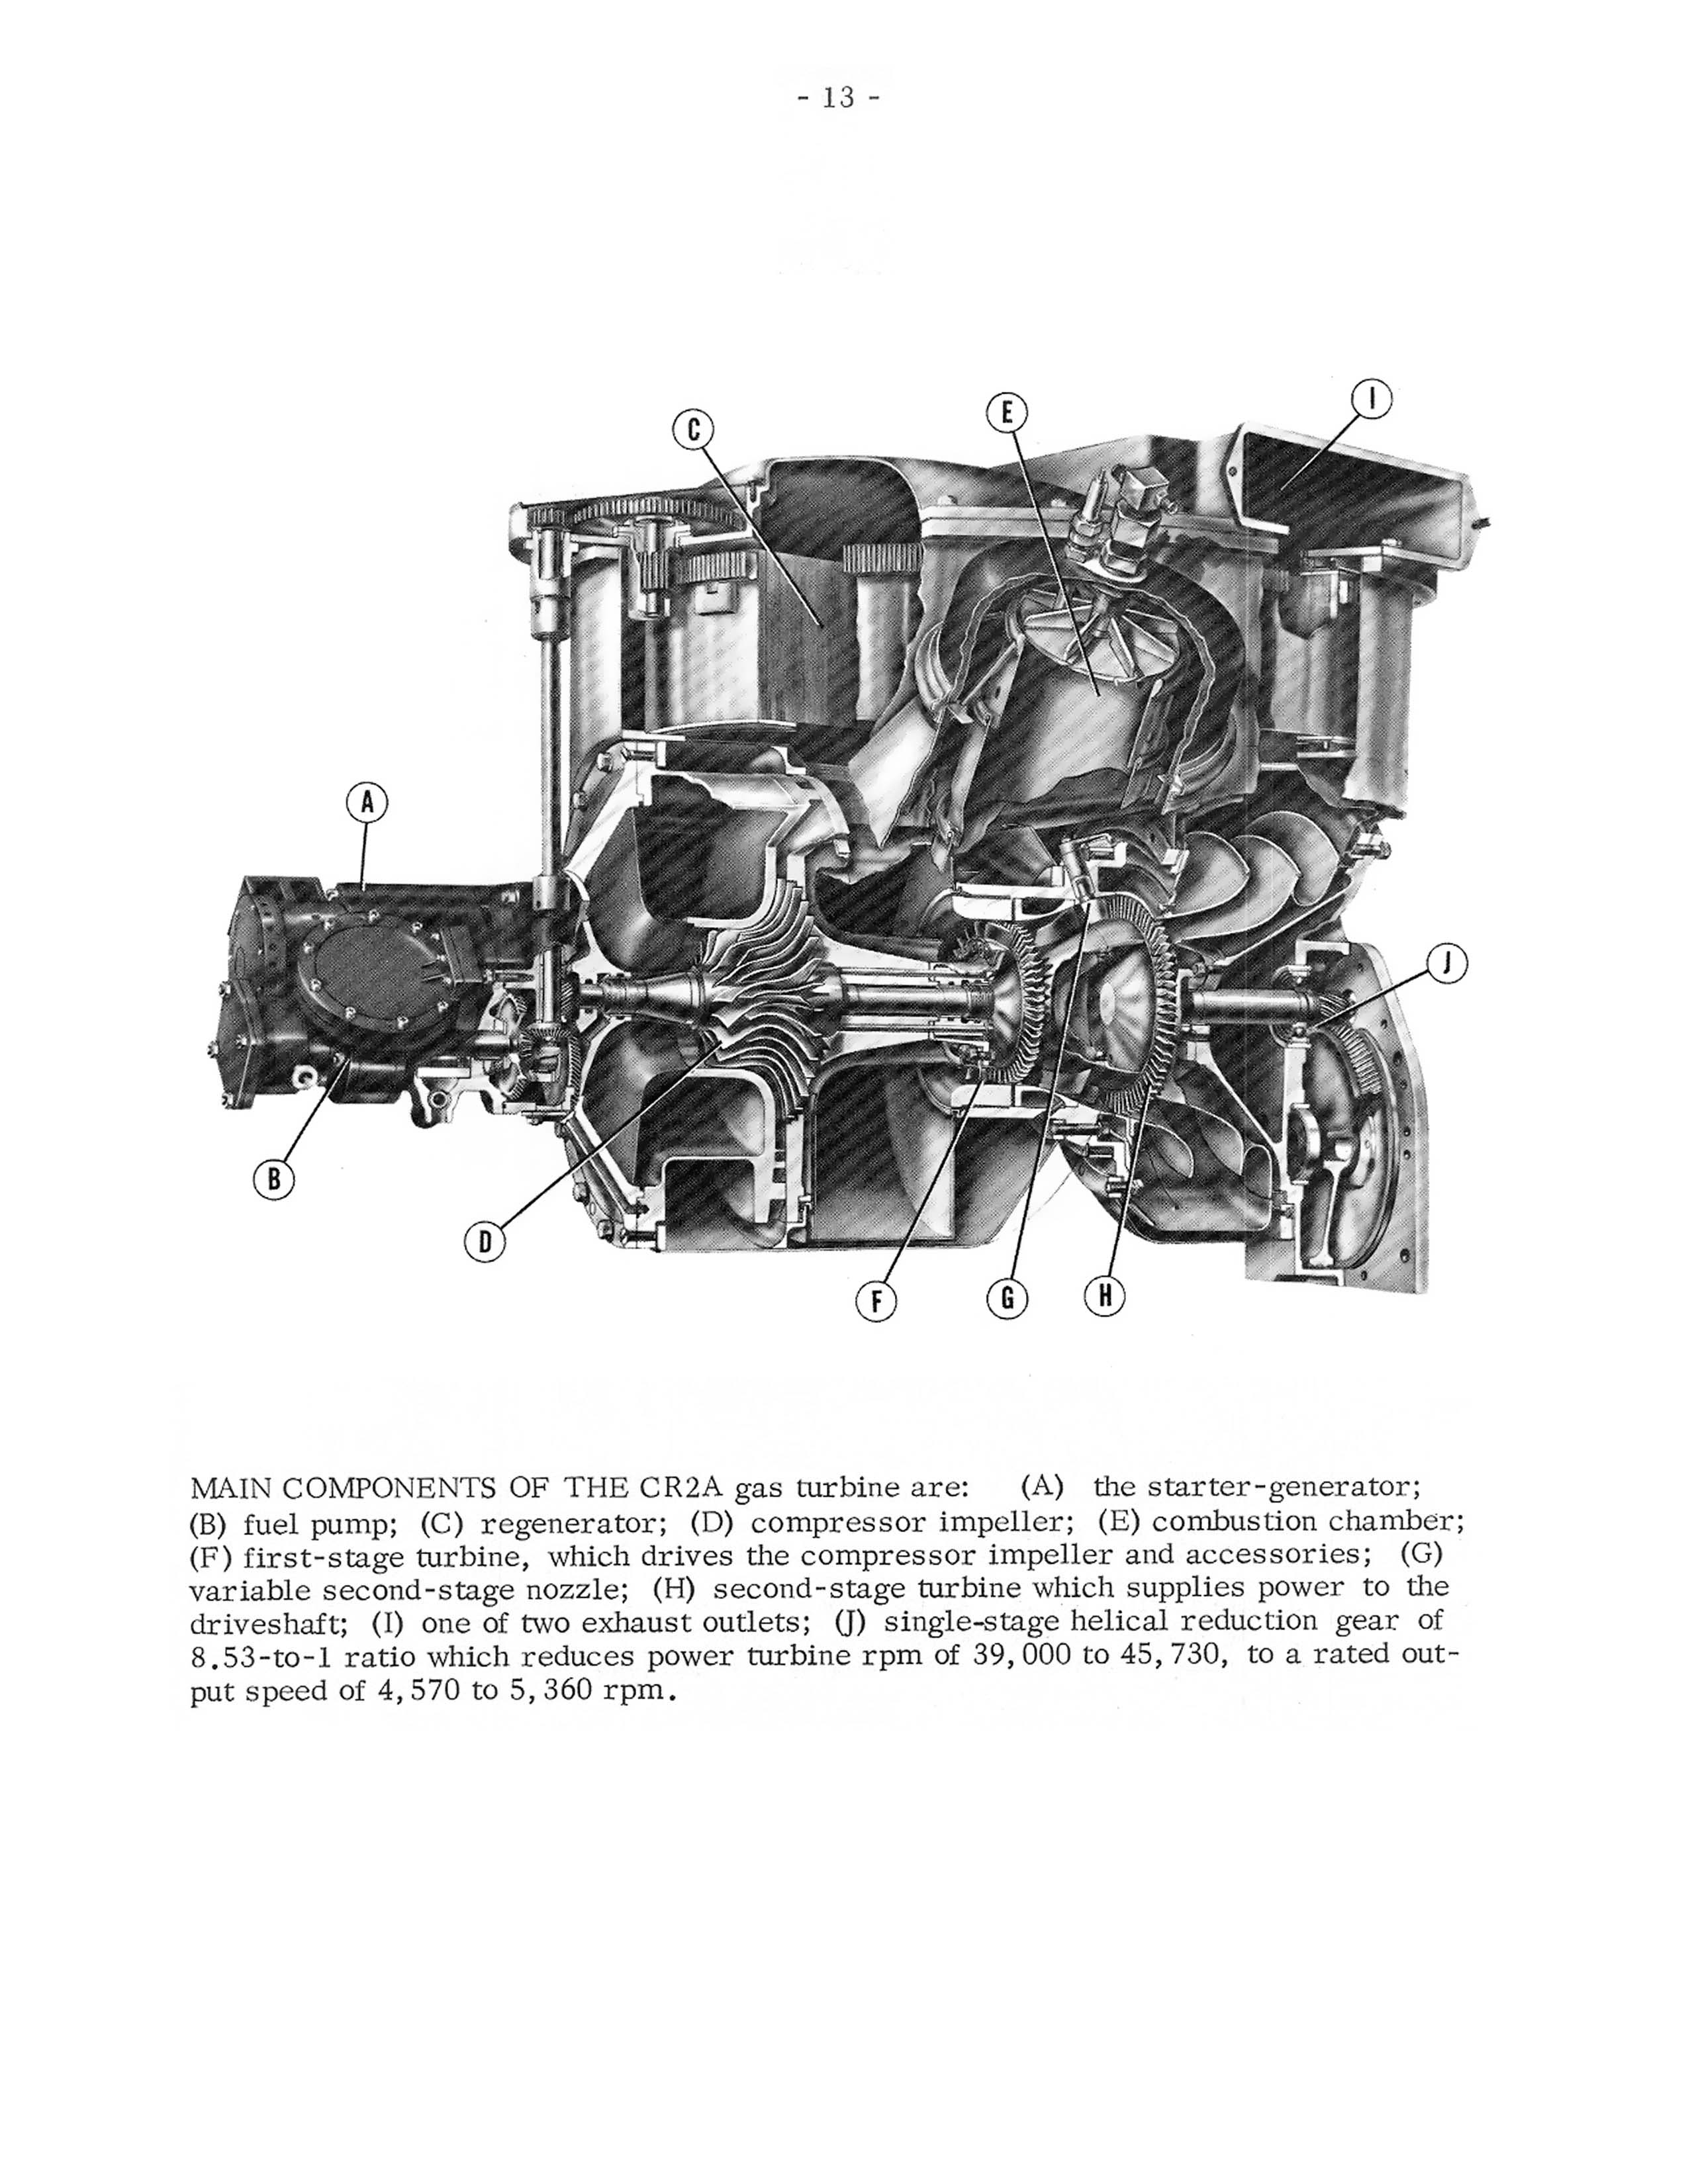 1954 Allstate Scooter Wiring Diagram Diagrams For A Cushman 1956 1963